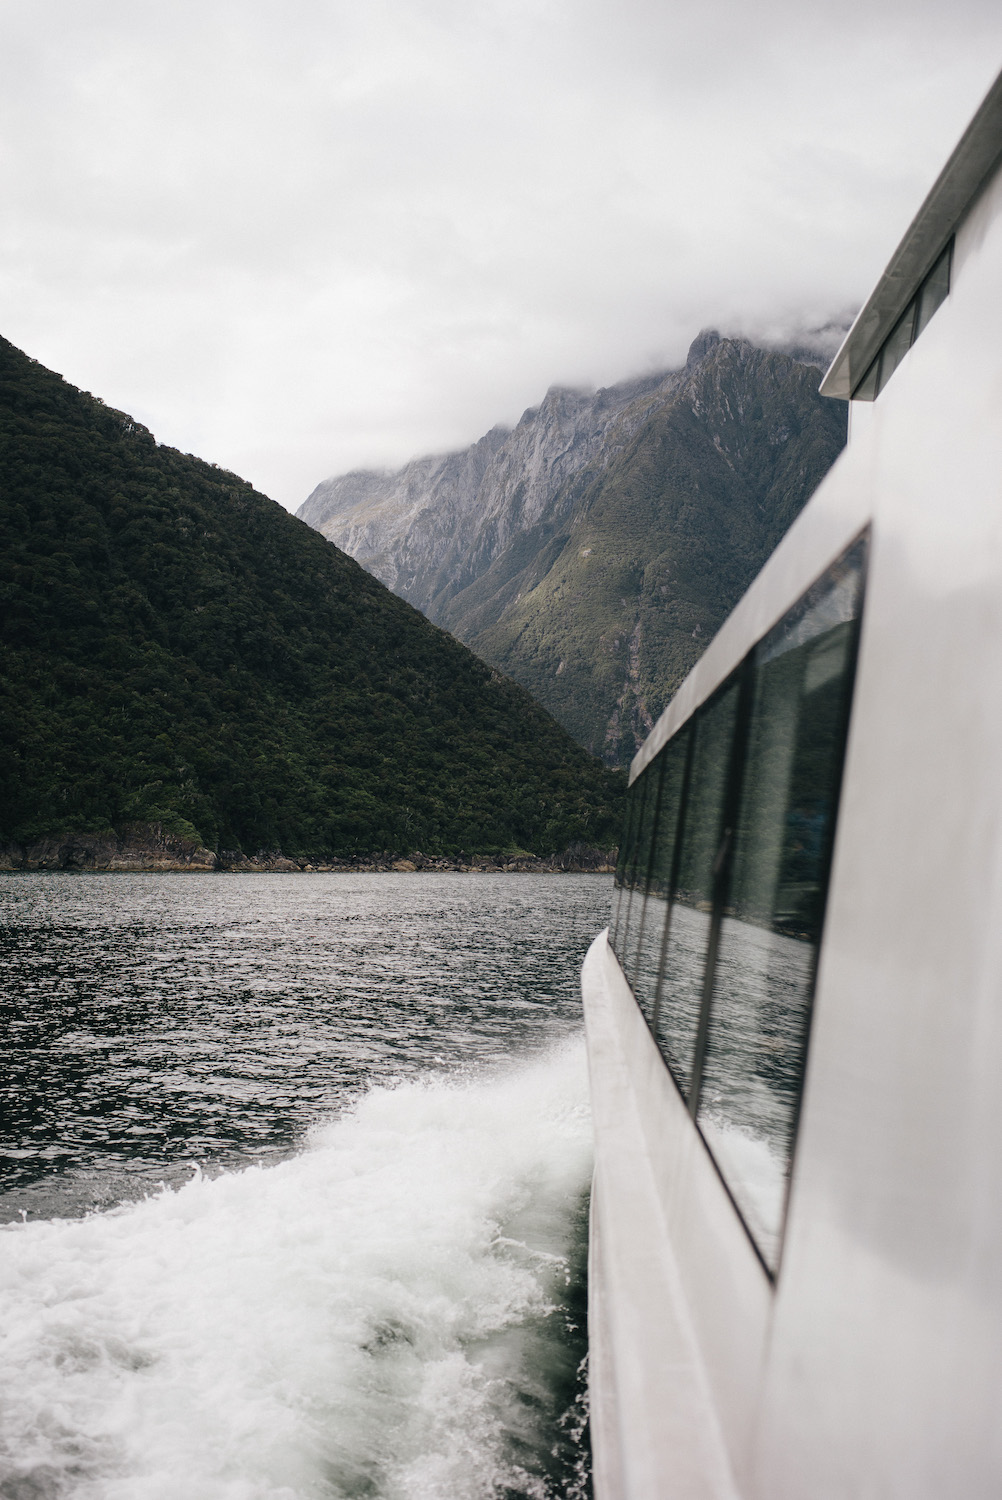 20180208_NewZealand_205608-Nick-Bedford,-Photographer-Alpine, Hiking, Leica M Typ 240, Milford Sound, Moutains, New Zealand, Routeburn Track, Southern Alps, Tramping, VSCO Film.jpg